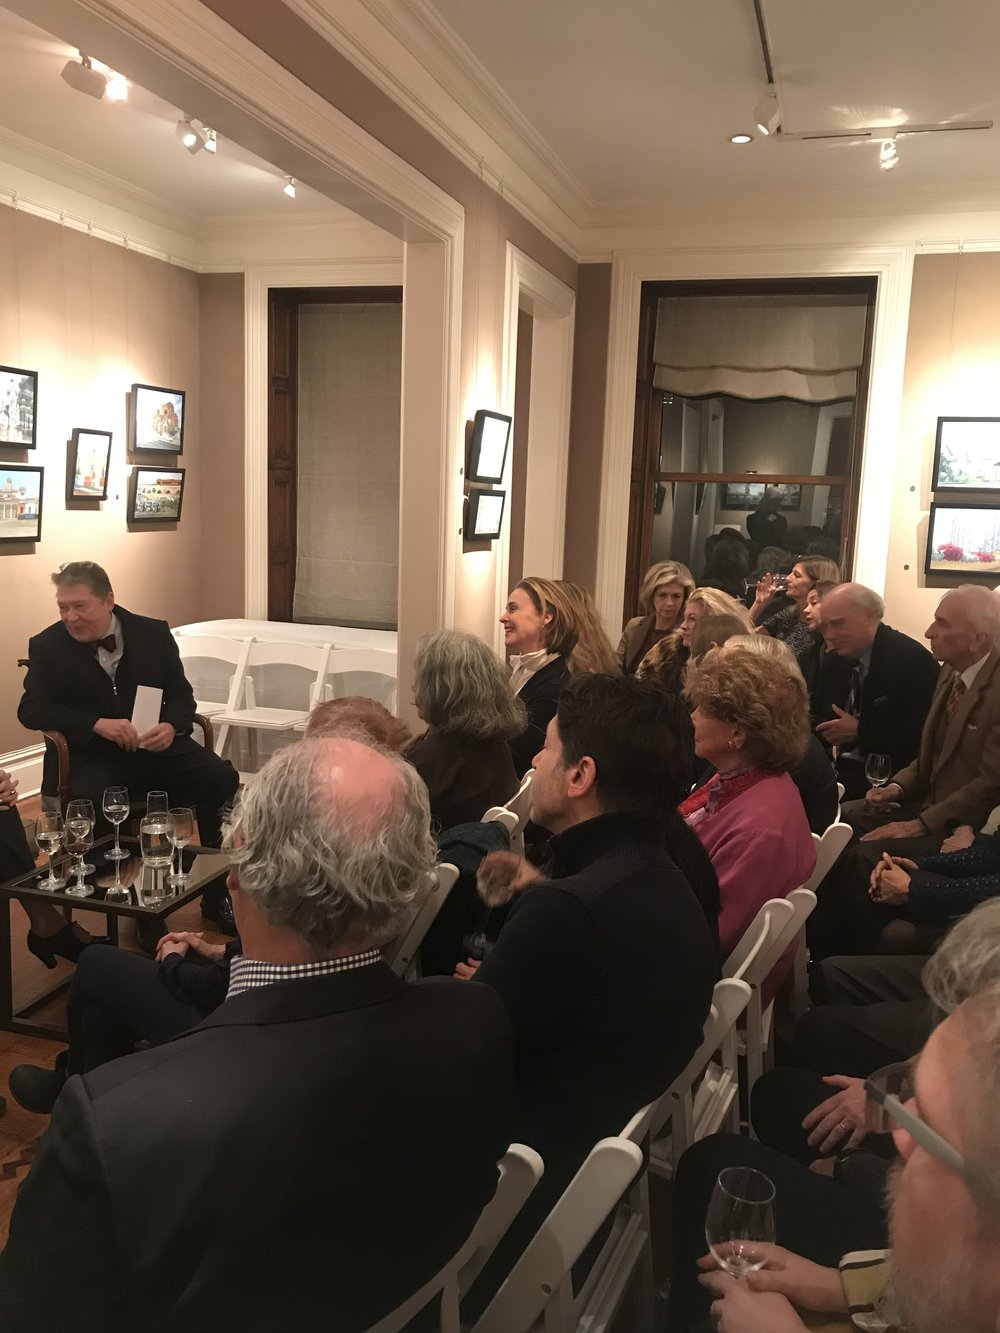 PAMELA TALESE THE ARTIST IN CONVERSATION WITH ROBERT SIMON AND LUIGI BALLERINI - View 4